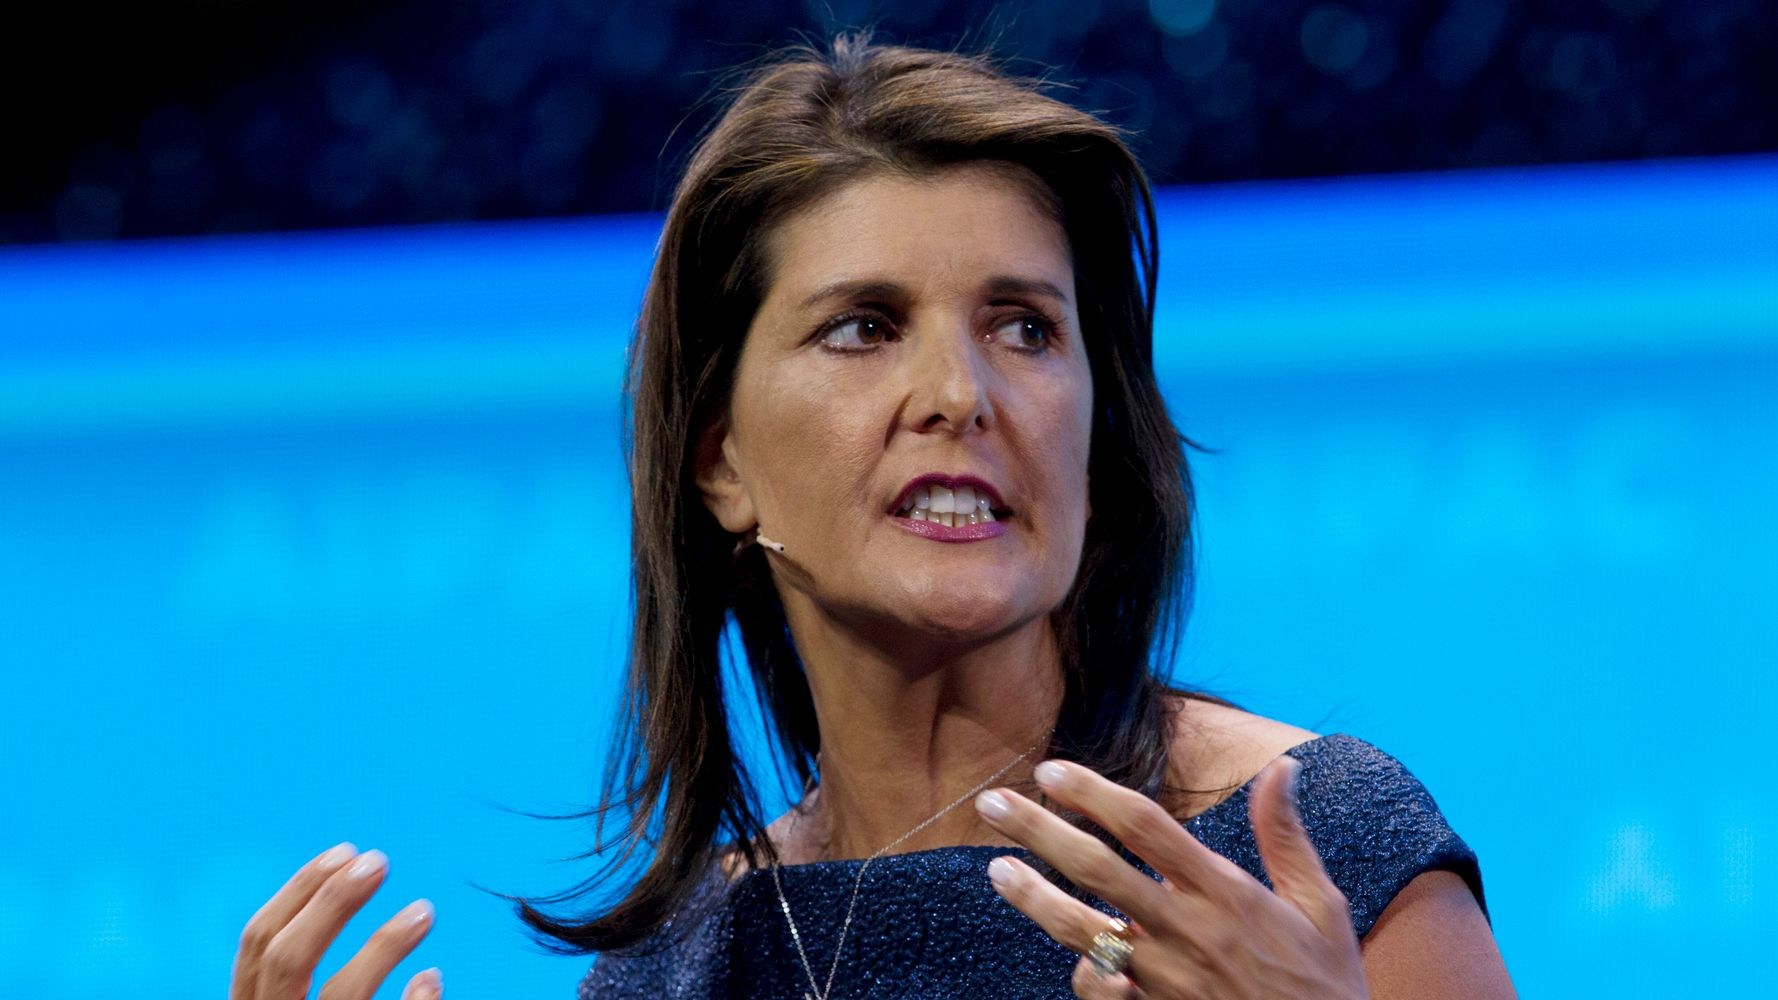 Westlake Legal Group 5dea96d9250000b64cd2f6c5 Nikki Haley: Confederate Flag Was About 'Heritage' Until Dylann Roof 'Hijacked' It